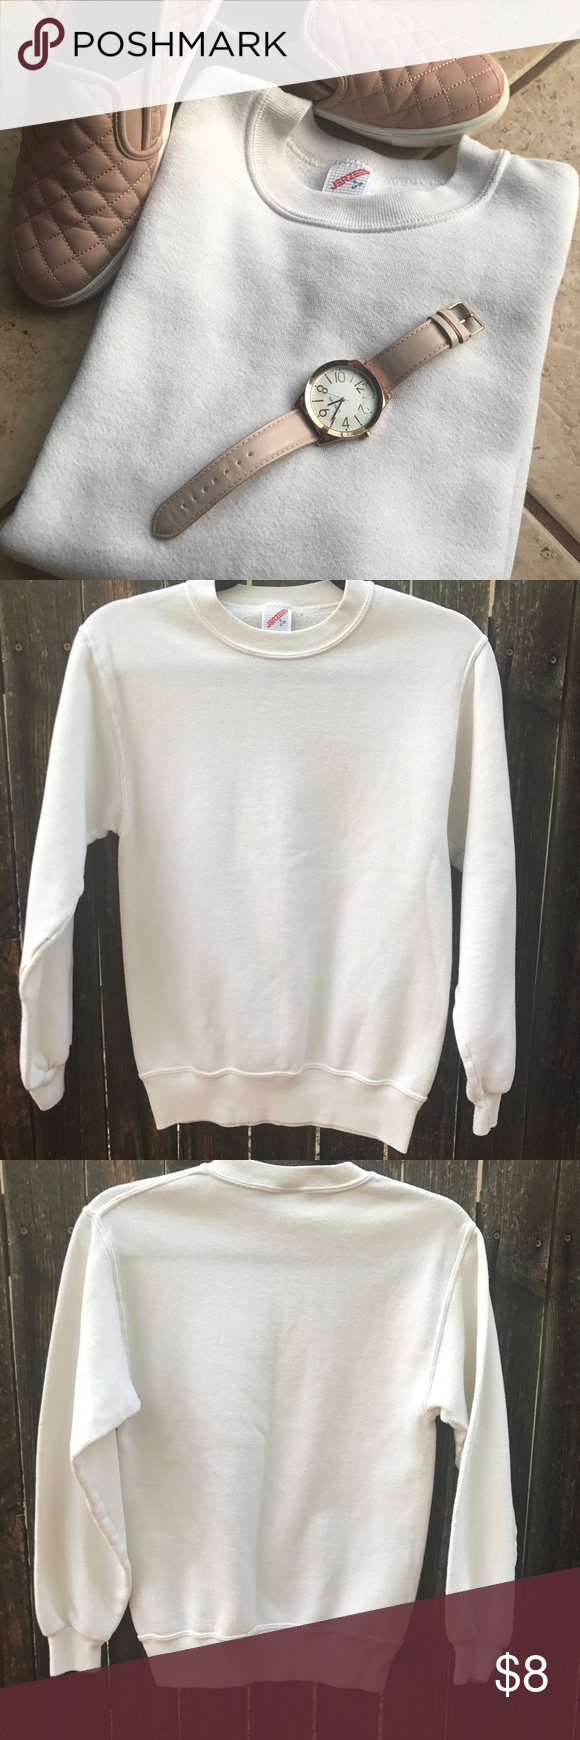 PRICE DROP ‼ Jerzees white sweater | White sweaters, Scoop neck ...